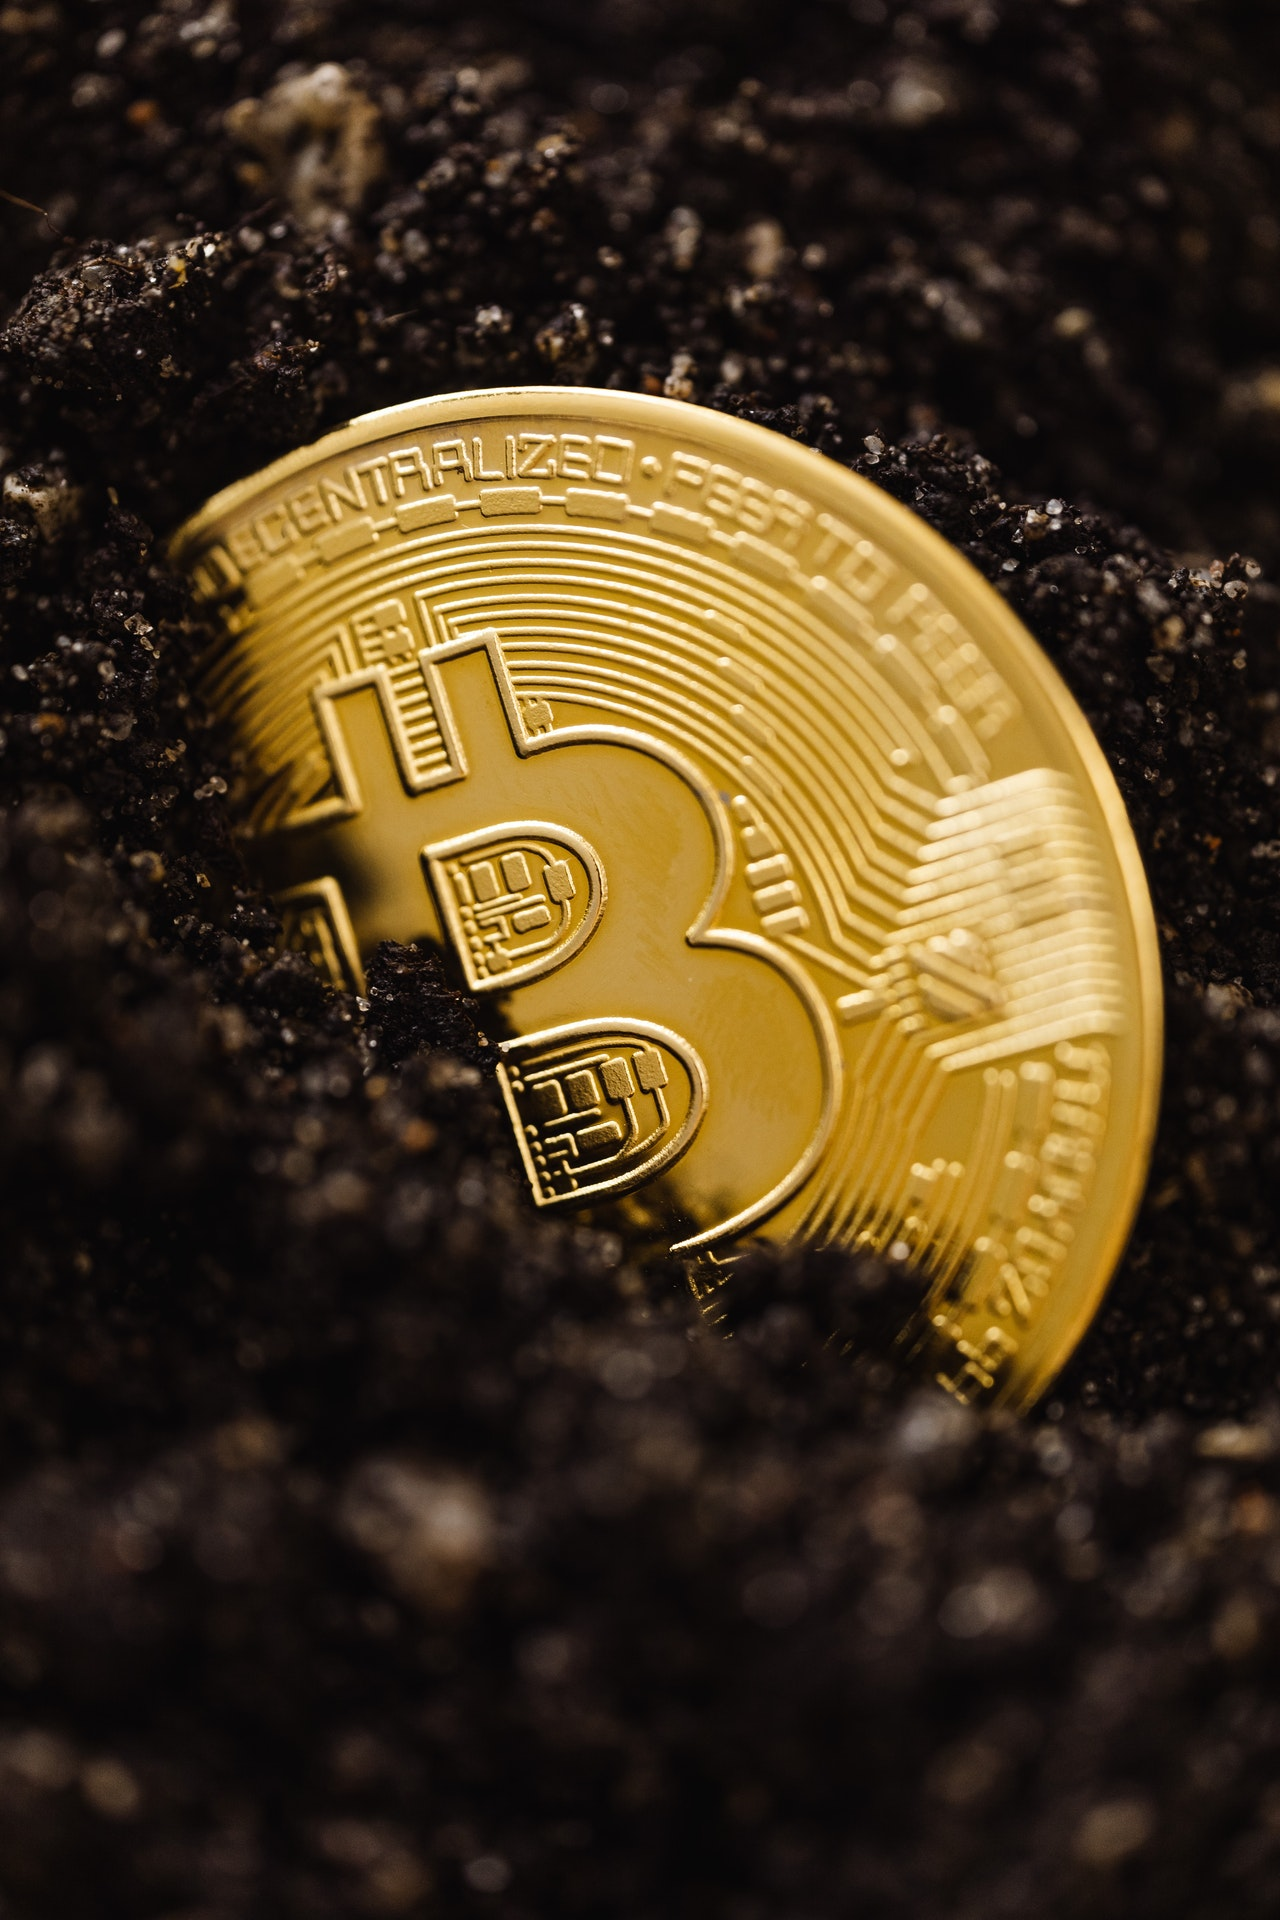 A bitcoin lying partially covered, in dirt